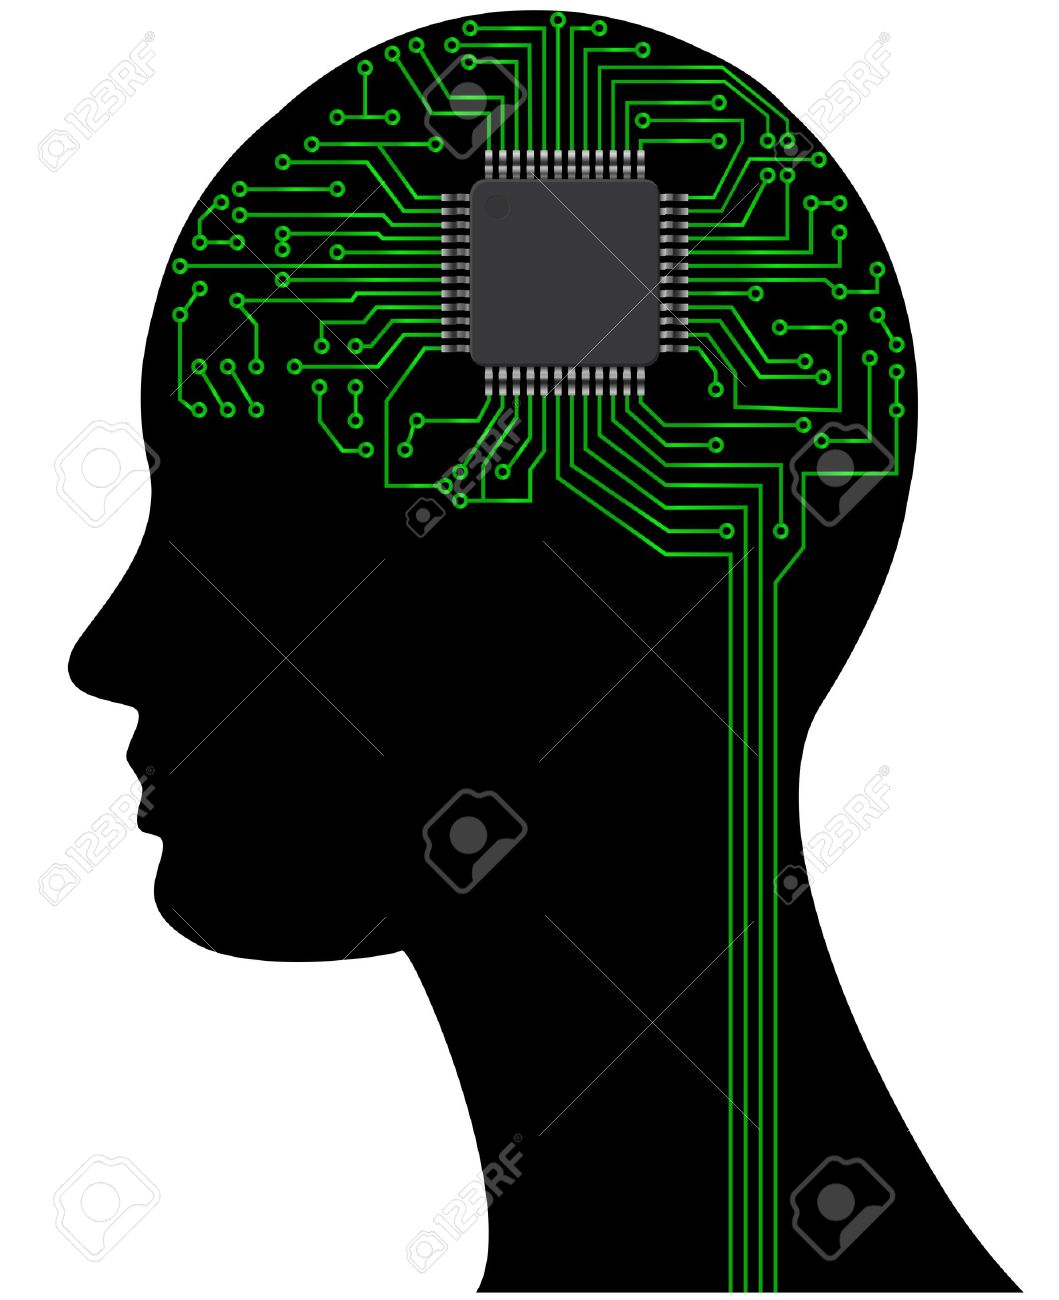 Illustration Of Head With Microchip And Circuit Royalty Free.